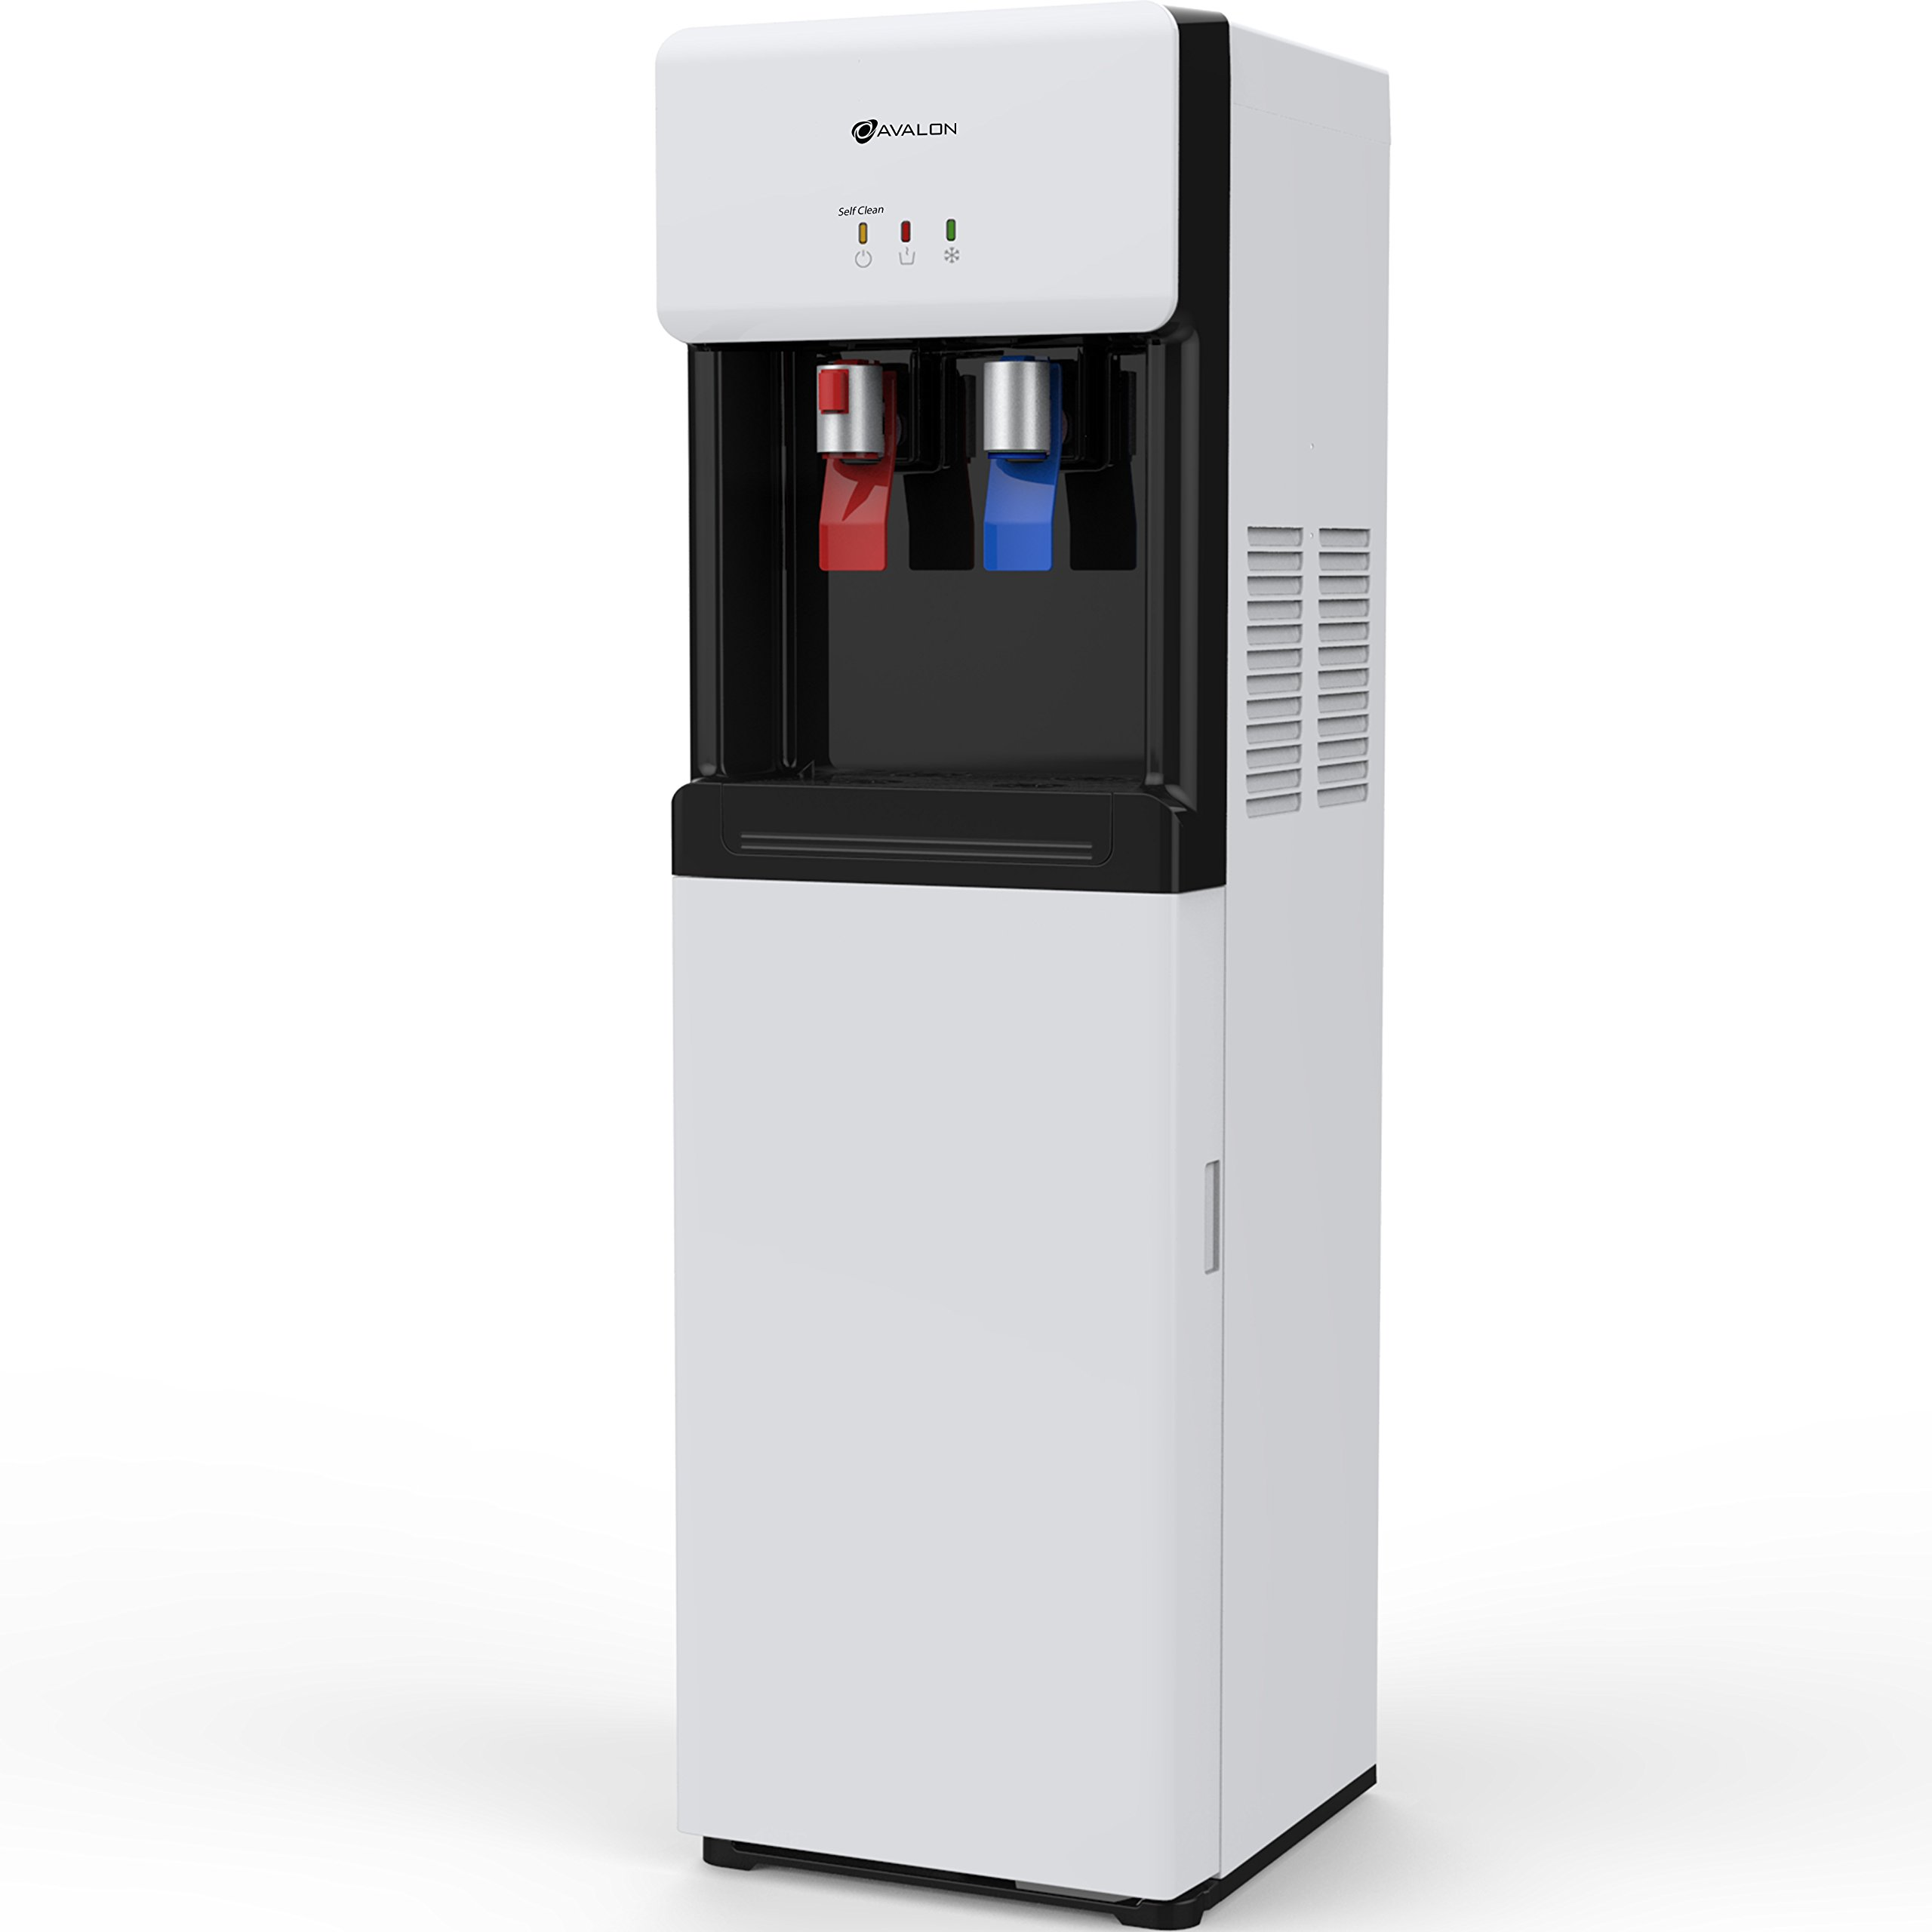 Avalon Self Cleaning Bottom Loading Water Cooler Dispenser - Hot & Cold Water, Child Safety Lock, Innovative Slim Design, Holds 3 or 5 Gallon Bottles - UL/Energy Star Approved